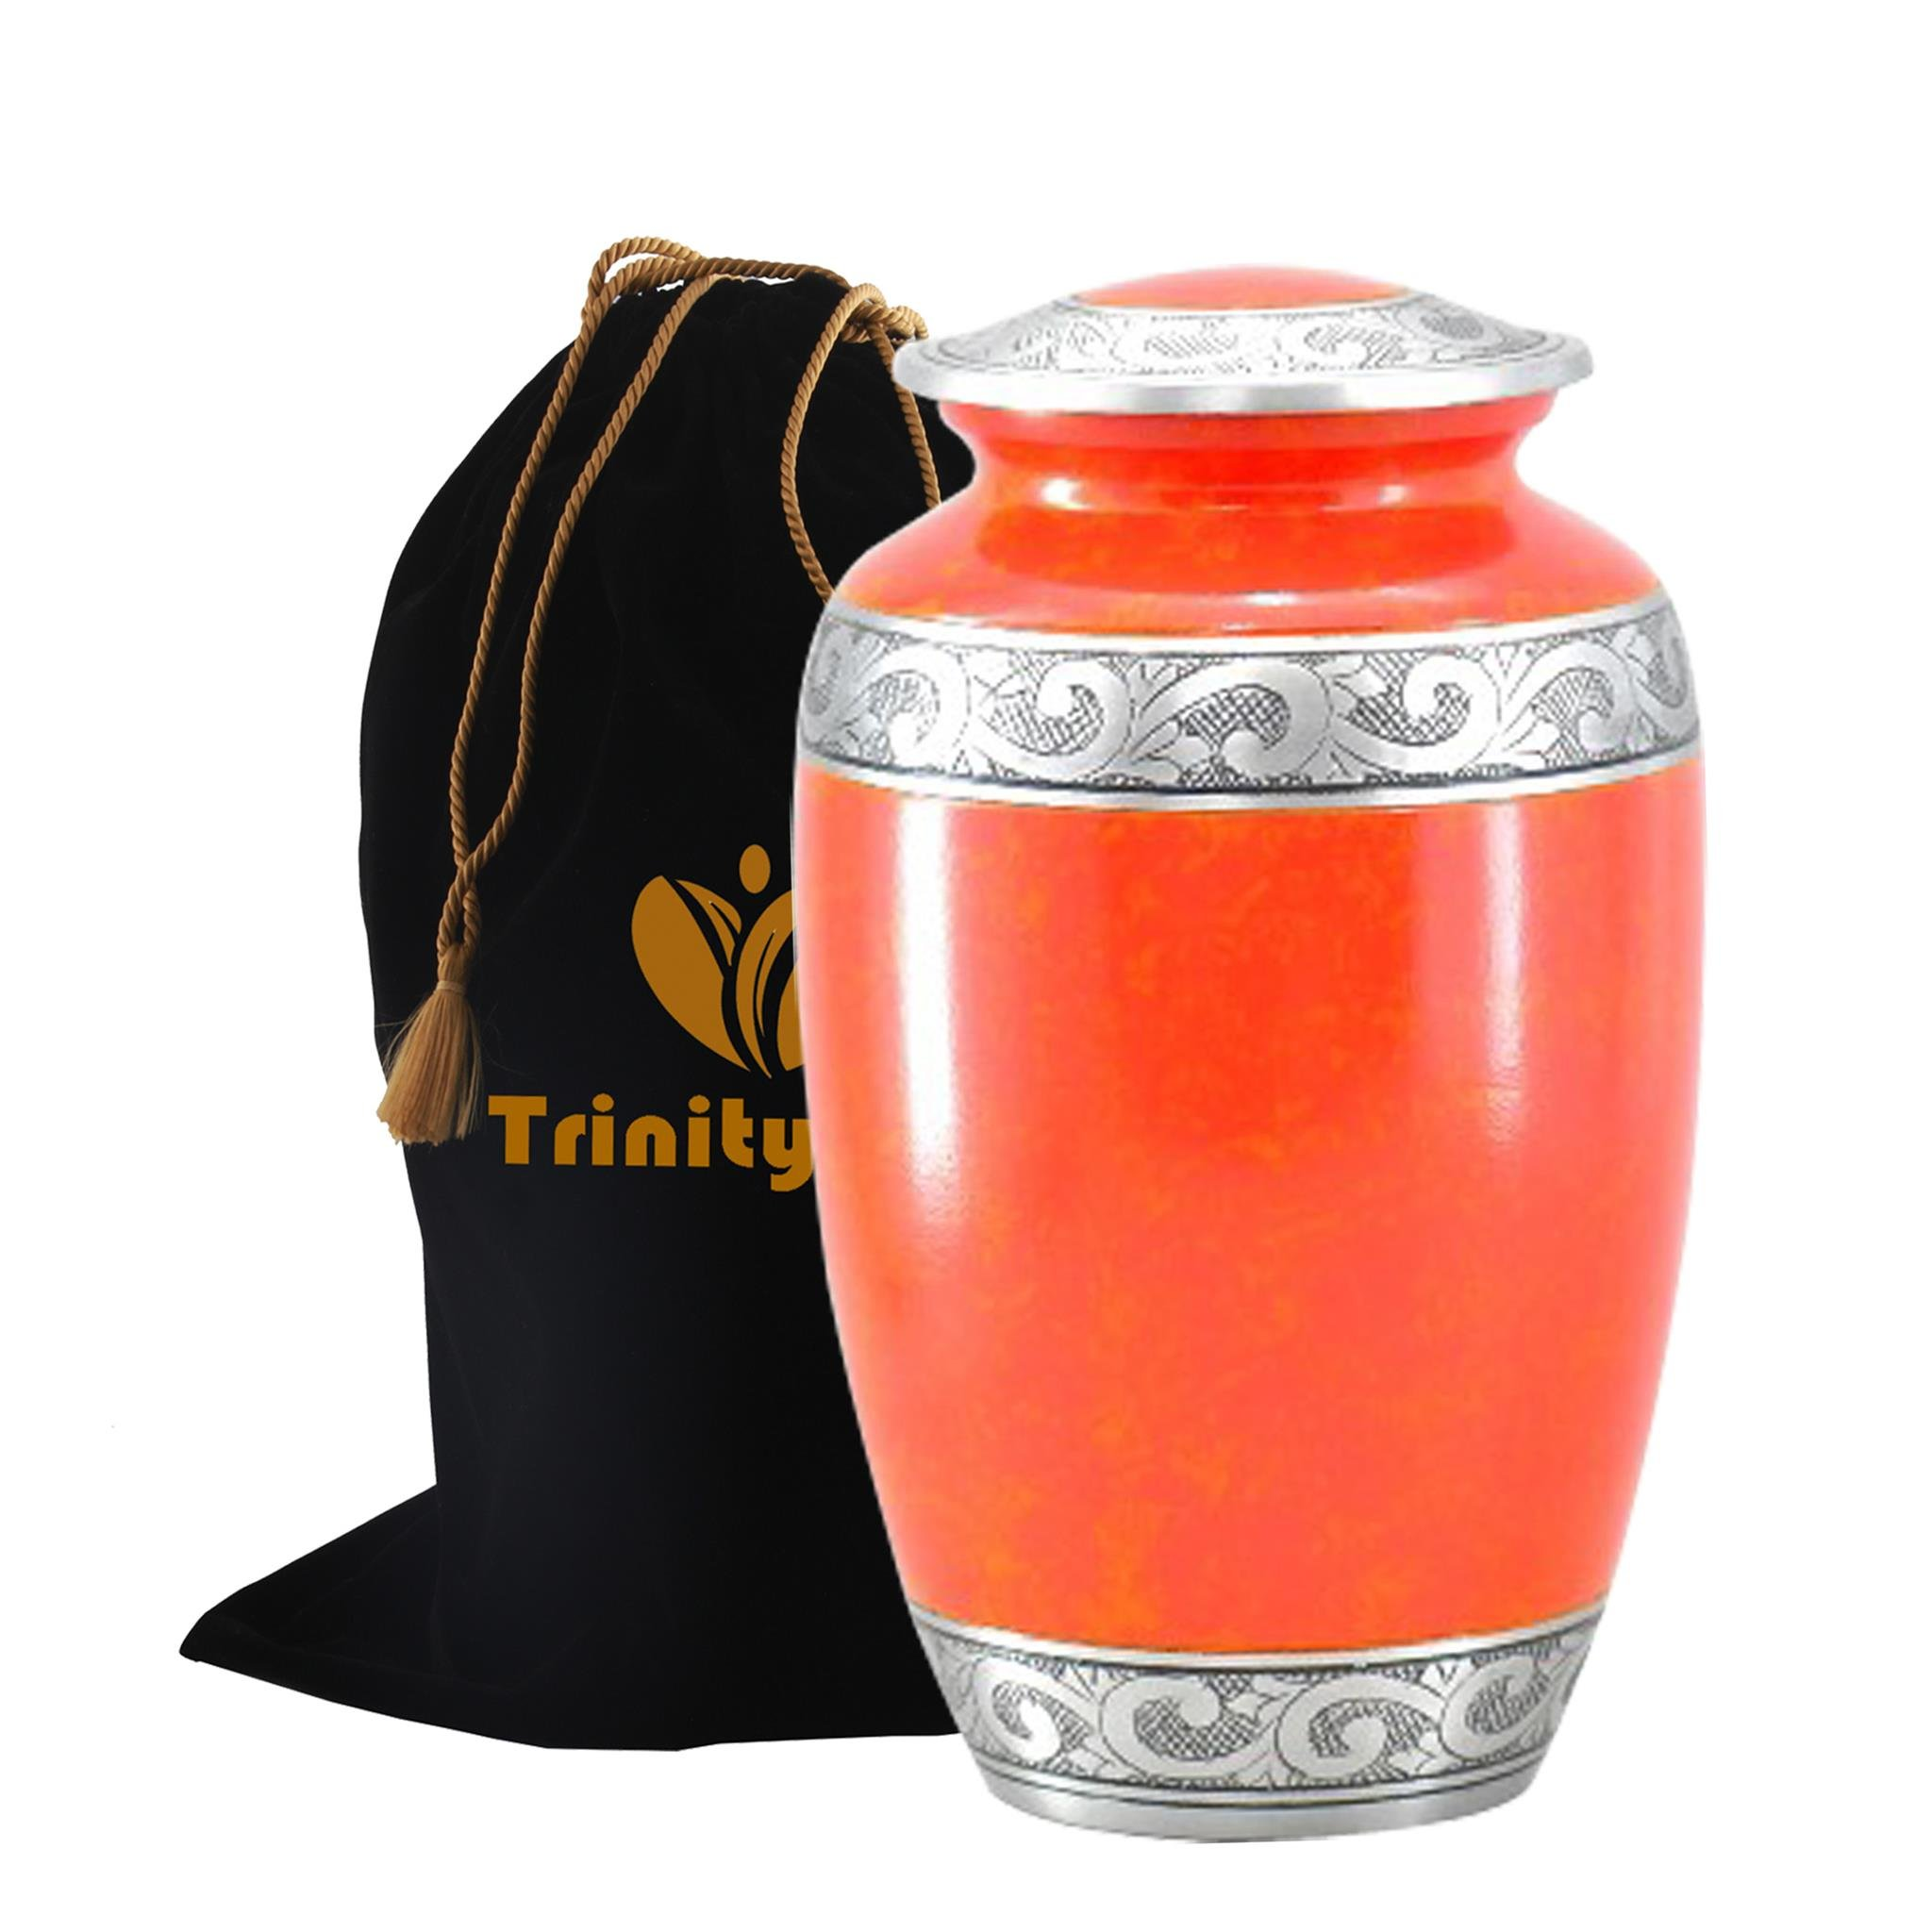 Beautiful Autum Cremation Urn - Beautifully Handcrafted Adult Funeral Urn - Solid Metal Funeral Urn - Affordable Urn for Human Ashes with Free Velvet Bag by Trinityurns